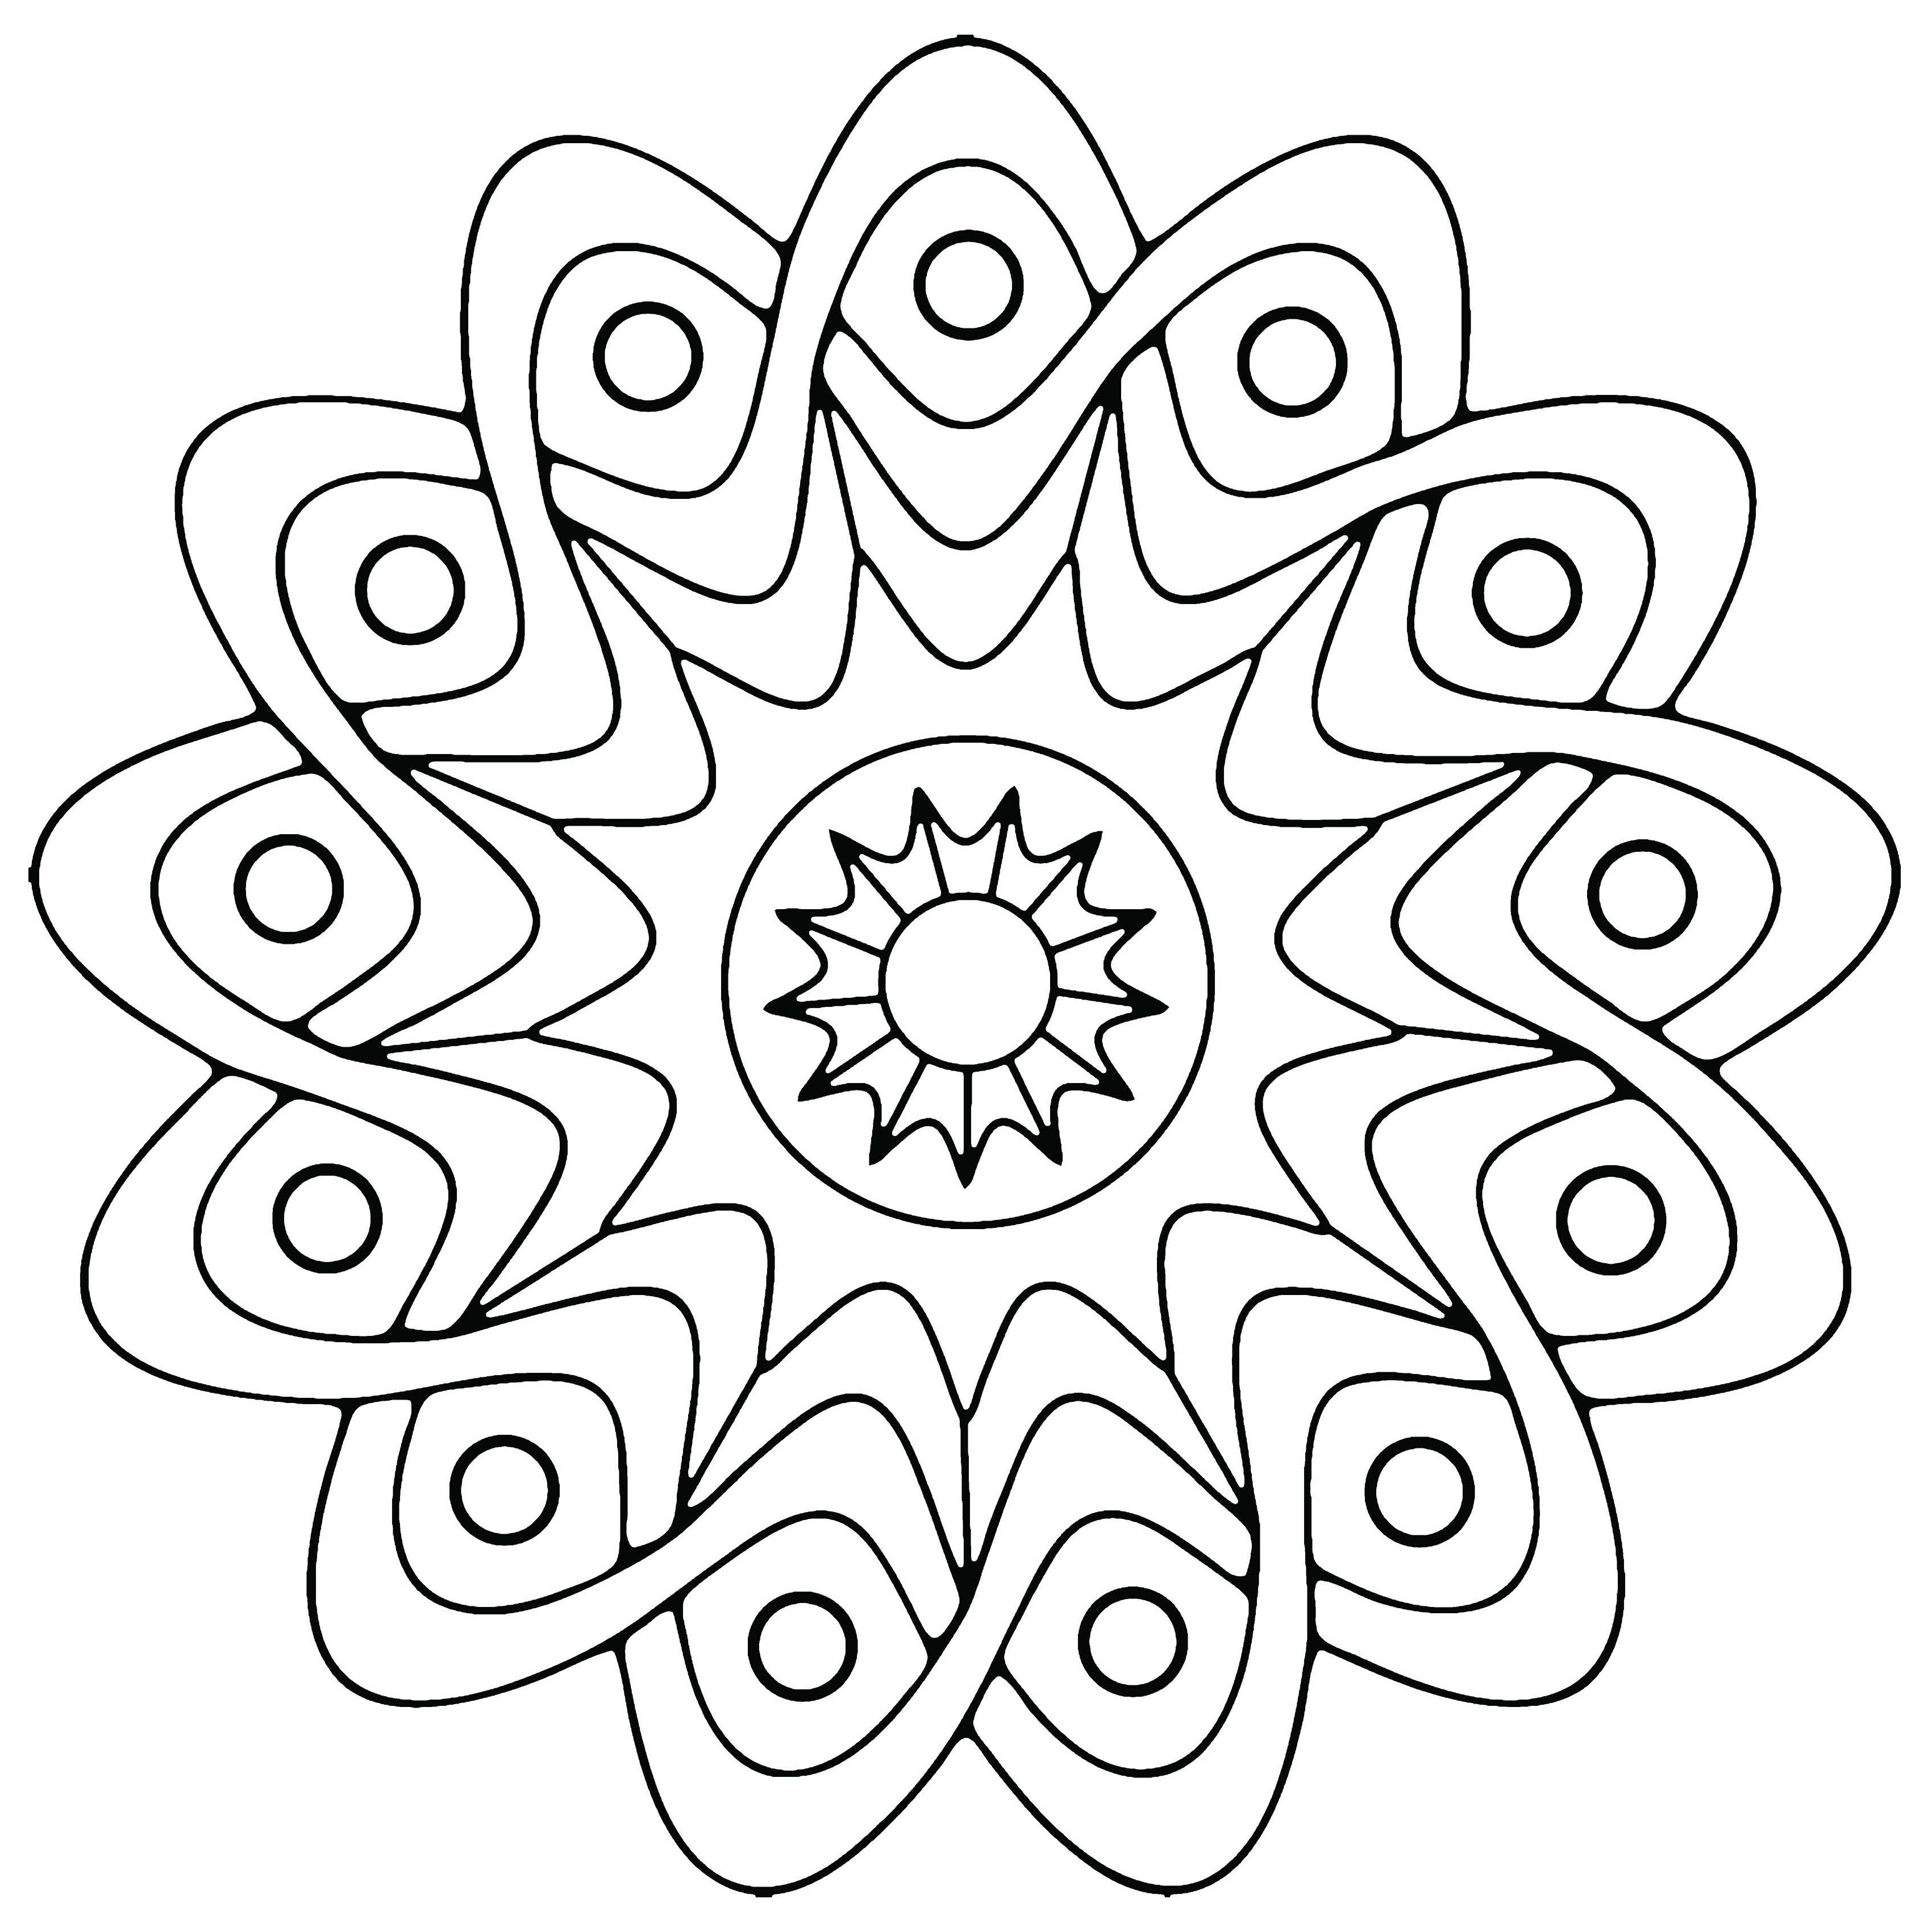 simple adult coloring pages - geometric coloring pages